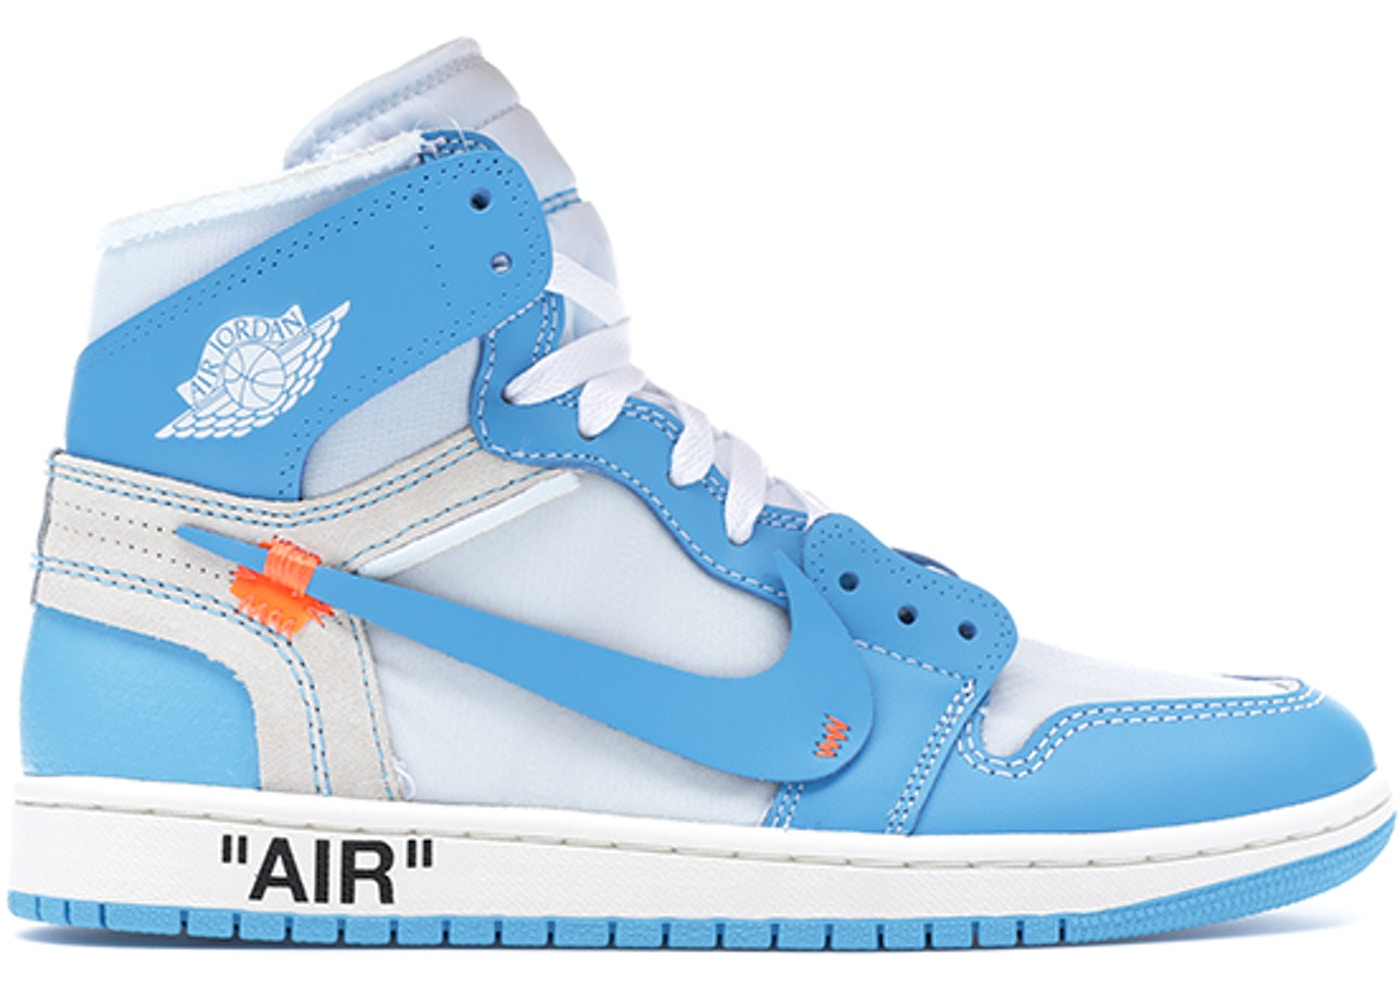 c37cf663a24f Jordan 1 Retro High Off-White University Blue - AQ0818-148